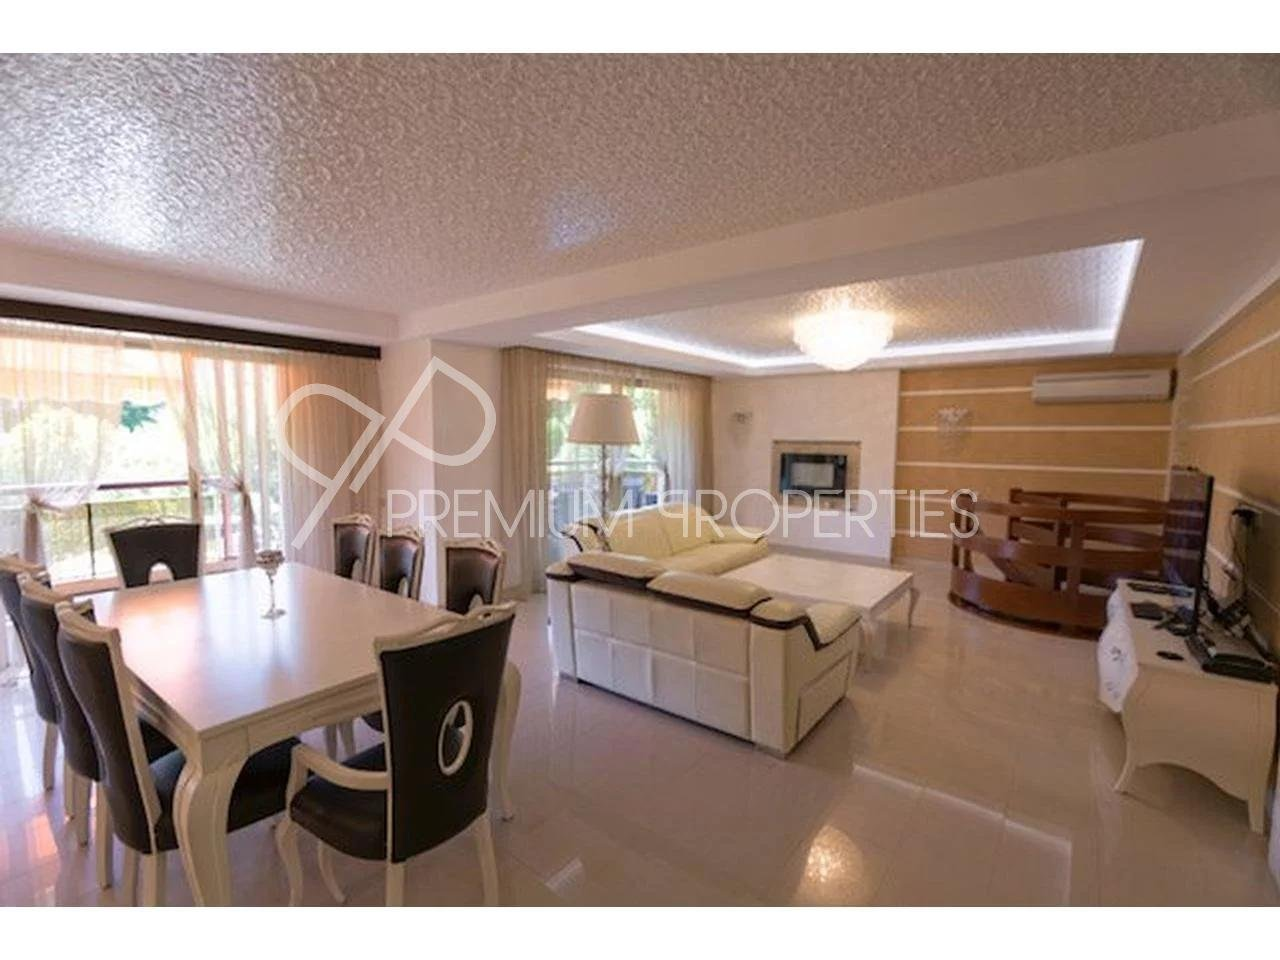 Appartement  4 Rooms 114.86m2  for sale   890000 €